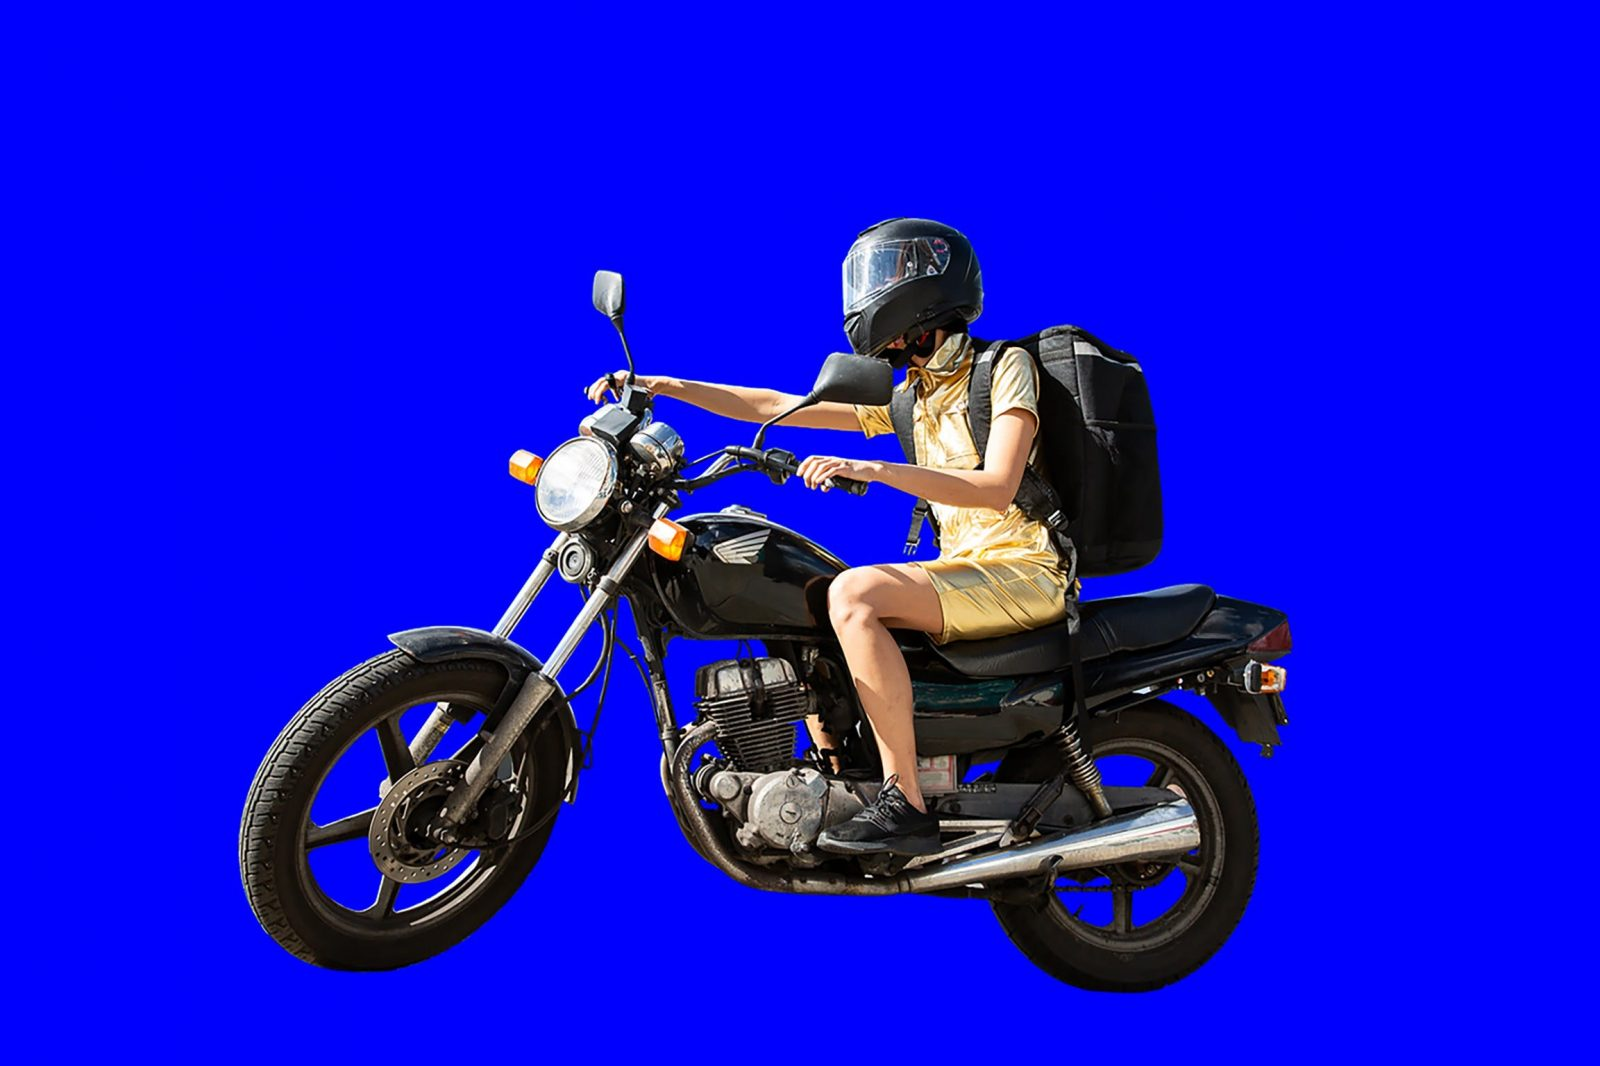 person riding motorbike in a gold dress wearing a food delivery backpack